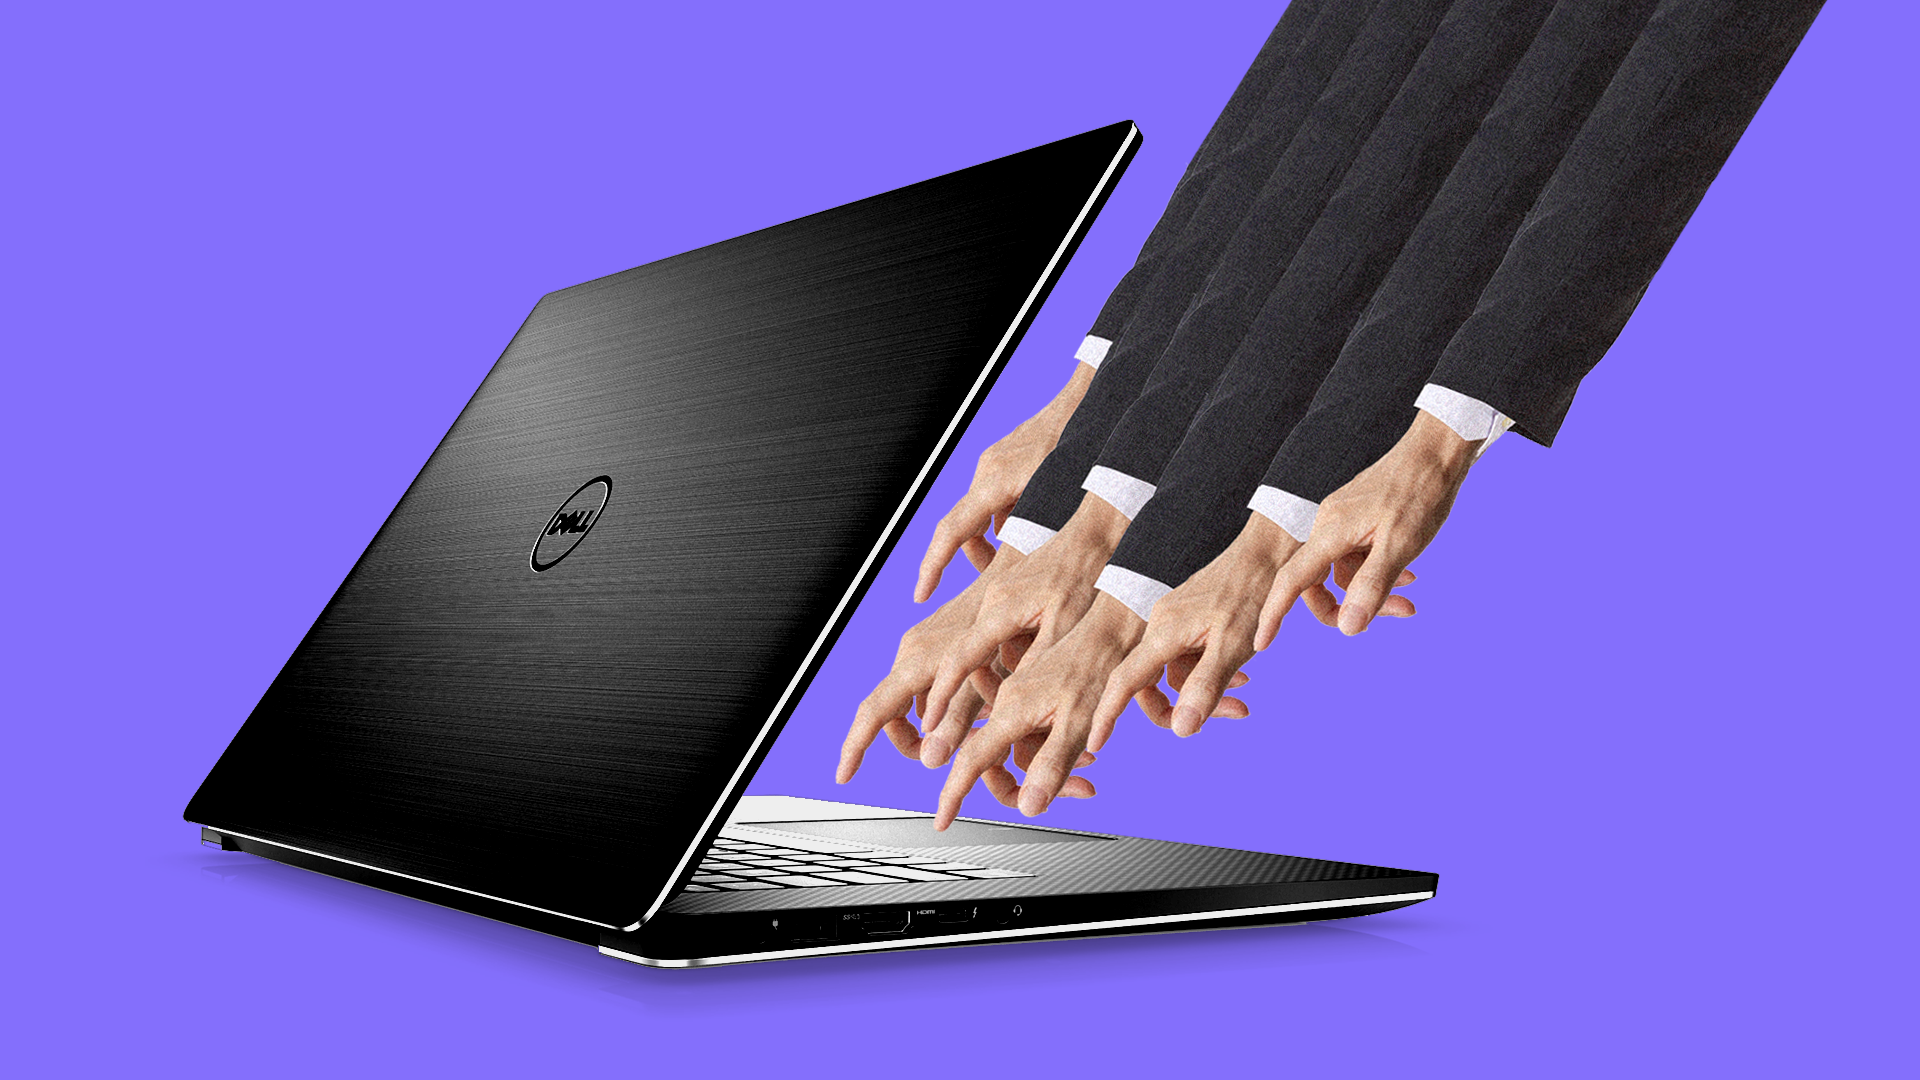 Lots of hands on a Dell keyboard